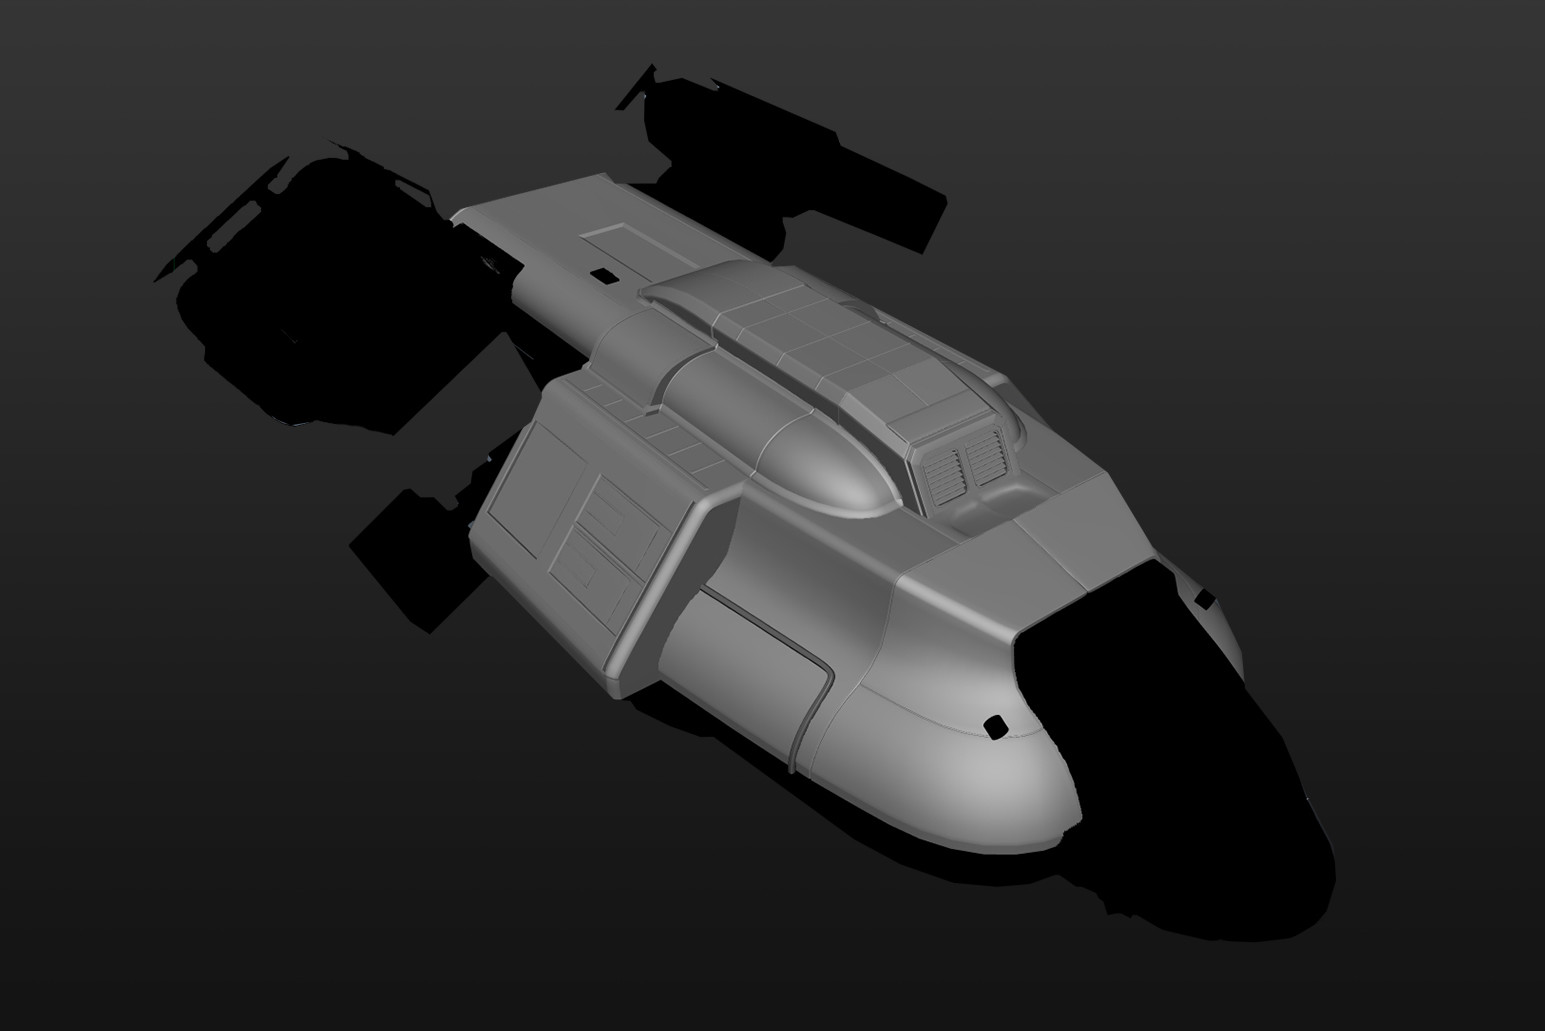 Modelling surfaces of the ship